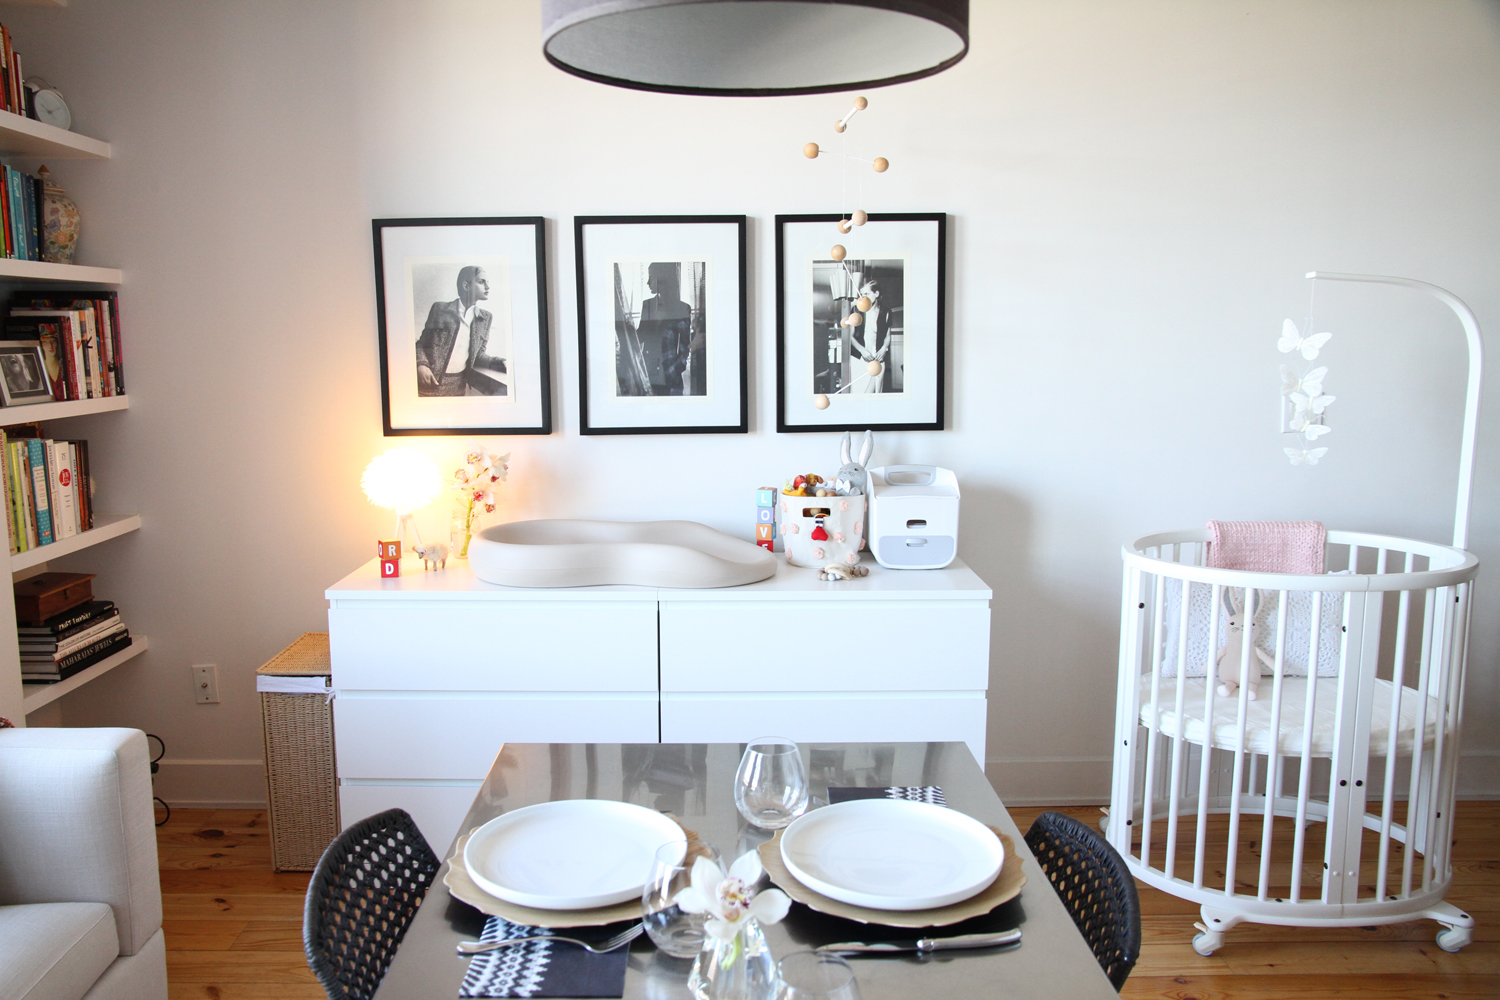 A Family Of Three In 600 Square Feet